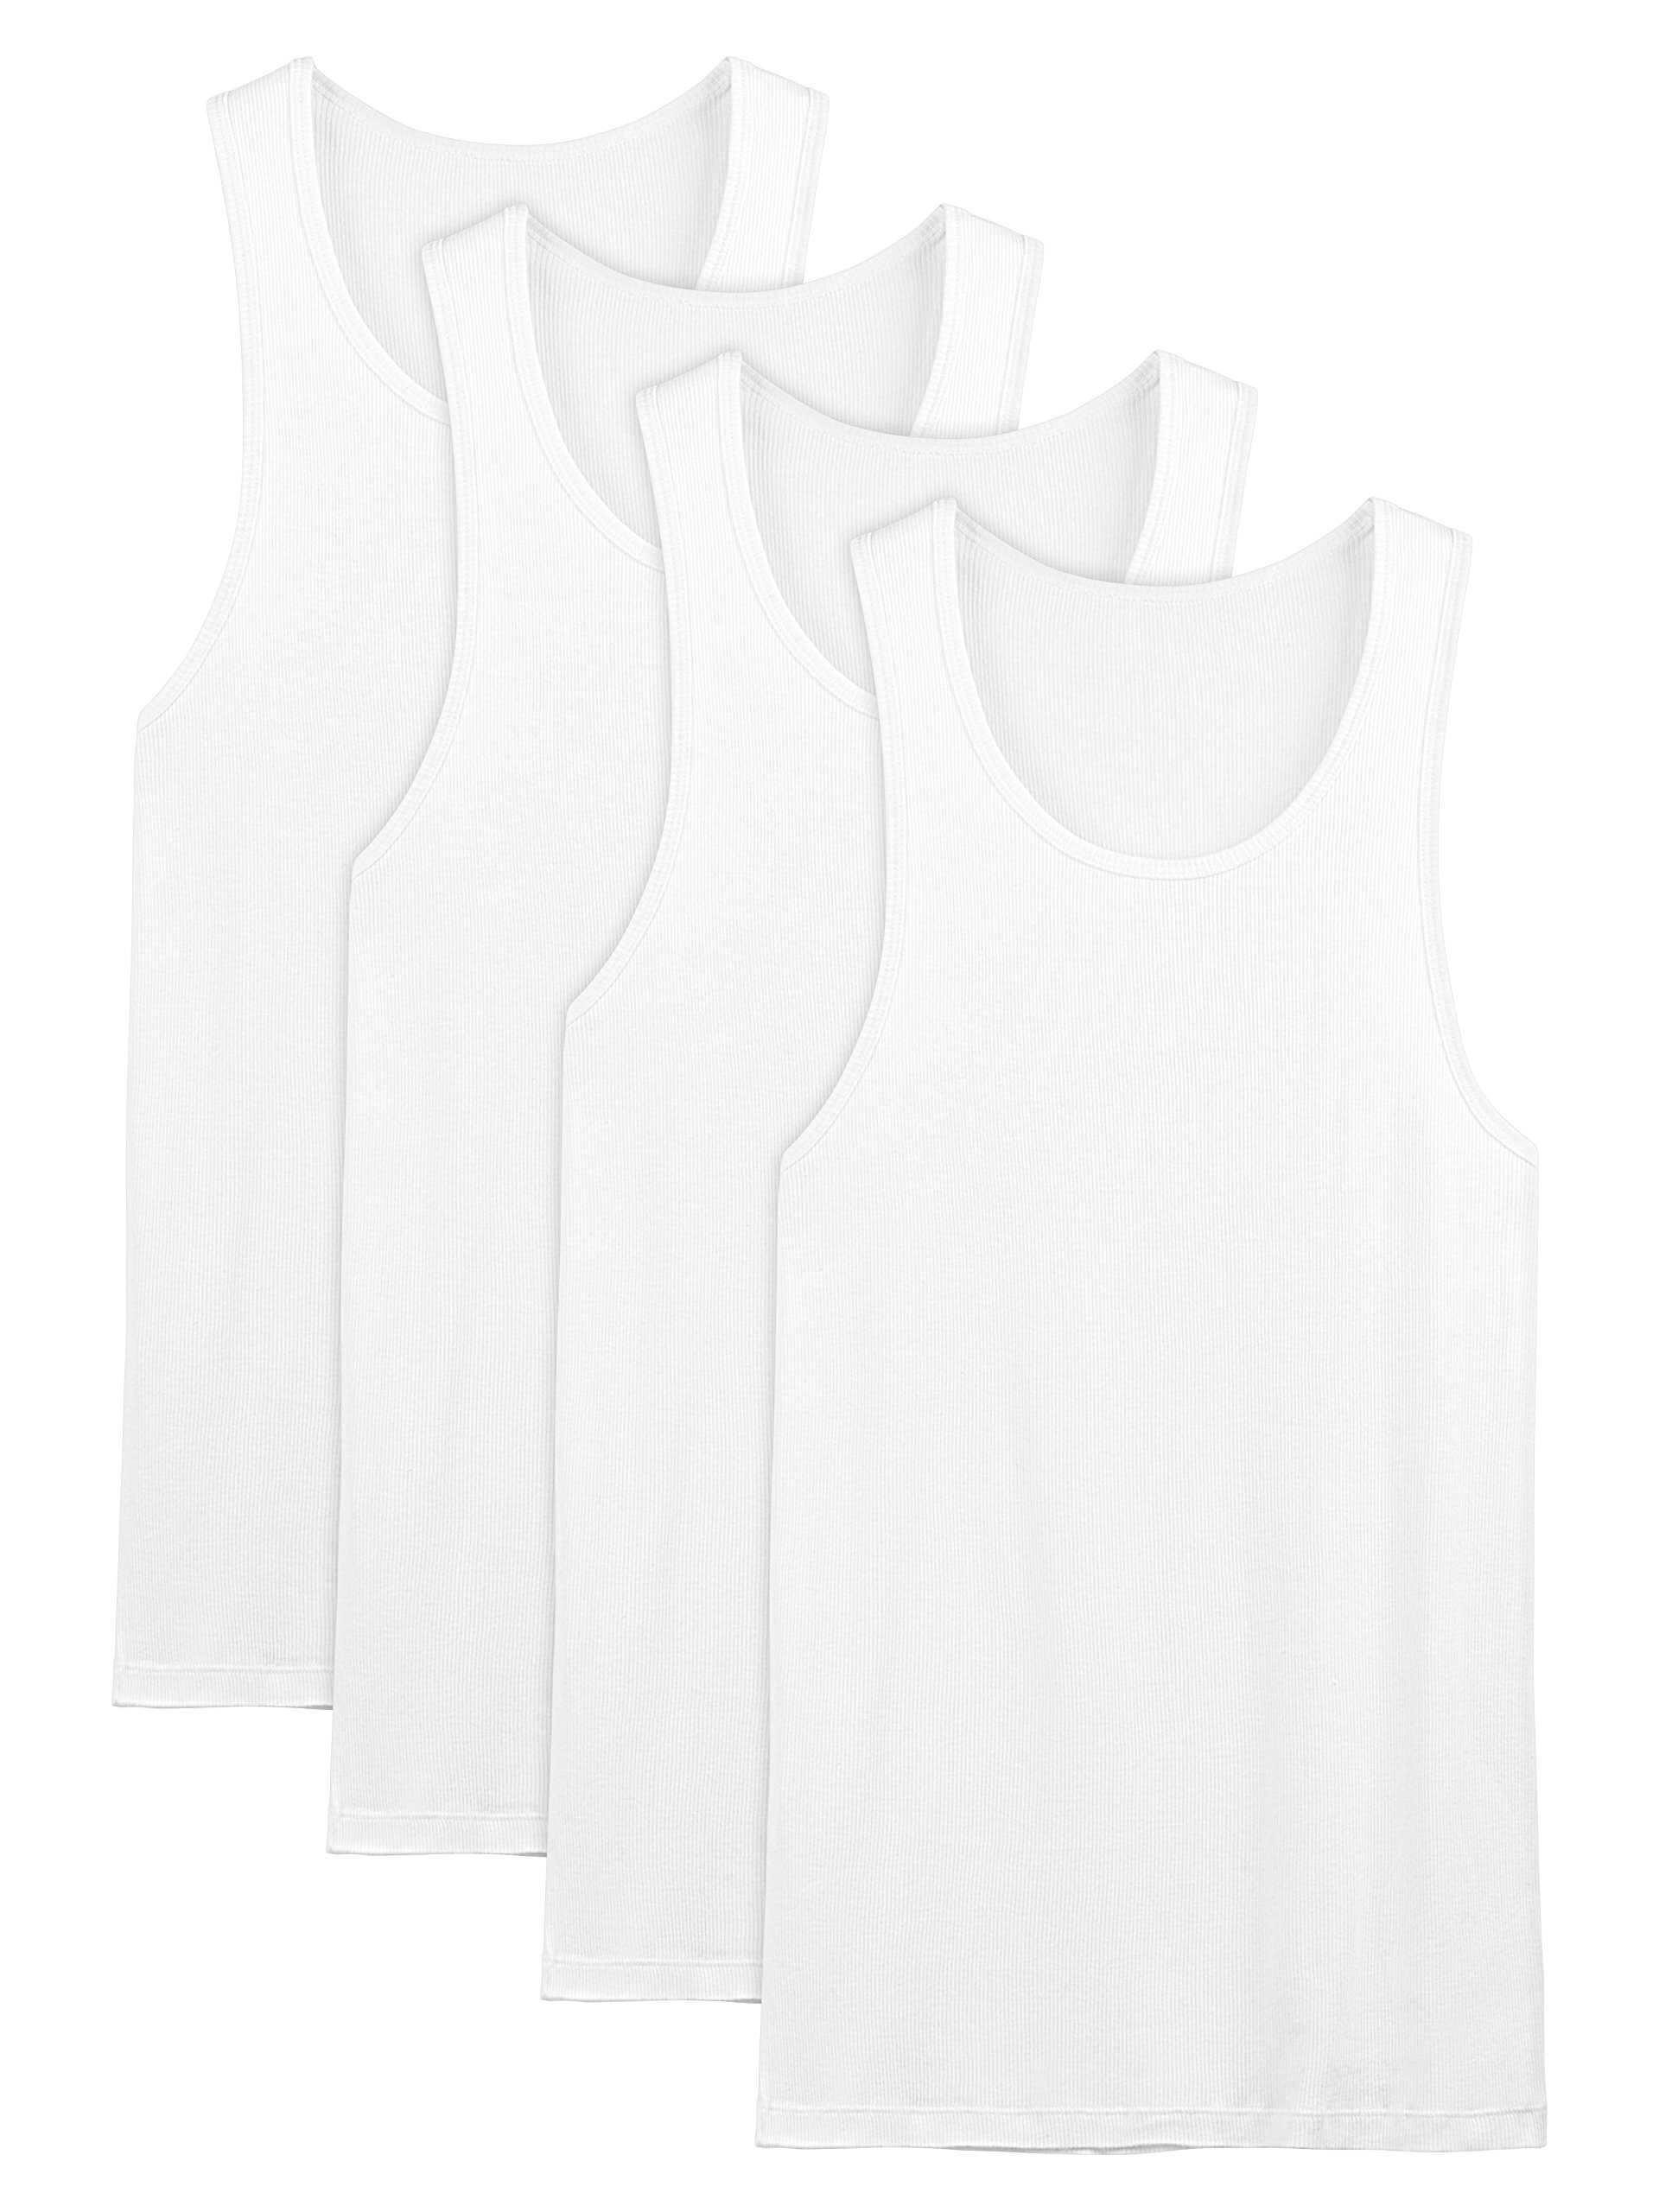 David Archy Men's 4 Pack Cotton Rib Tank Top A-Shirts Sleeveless Workout Undershirts(White,S)